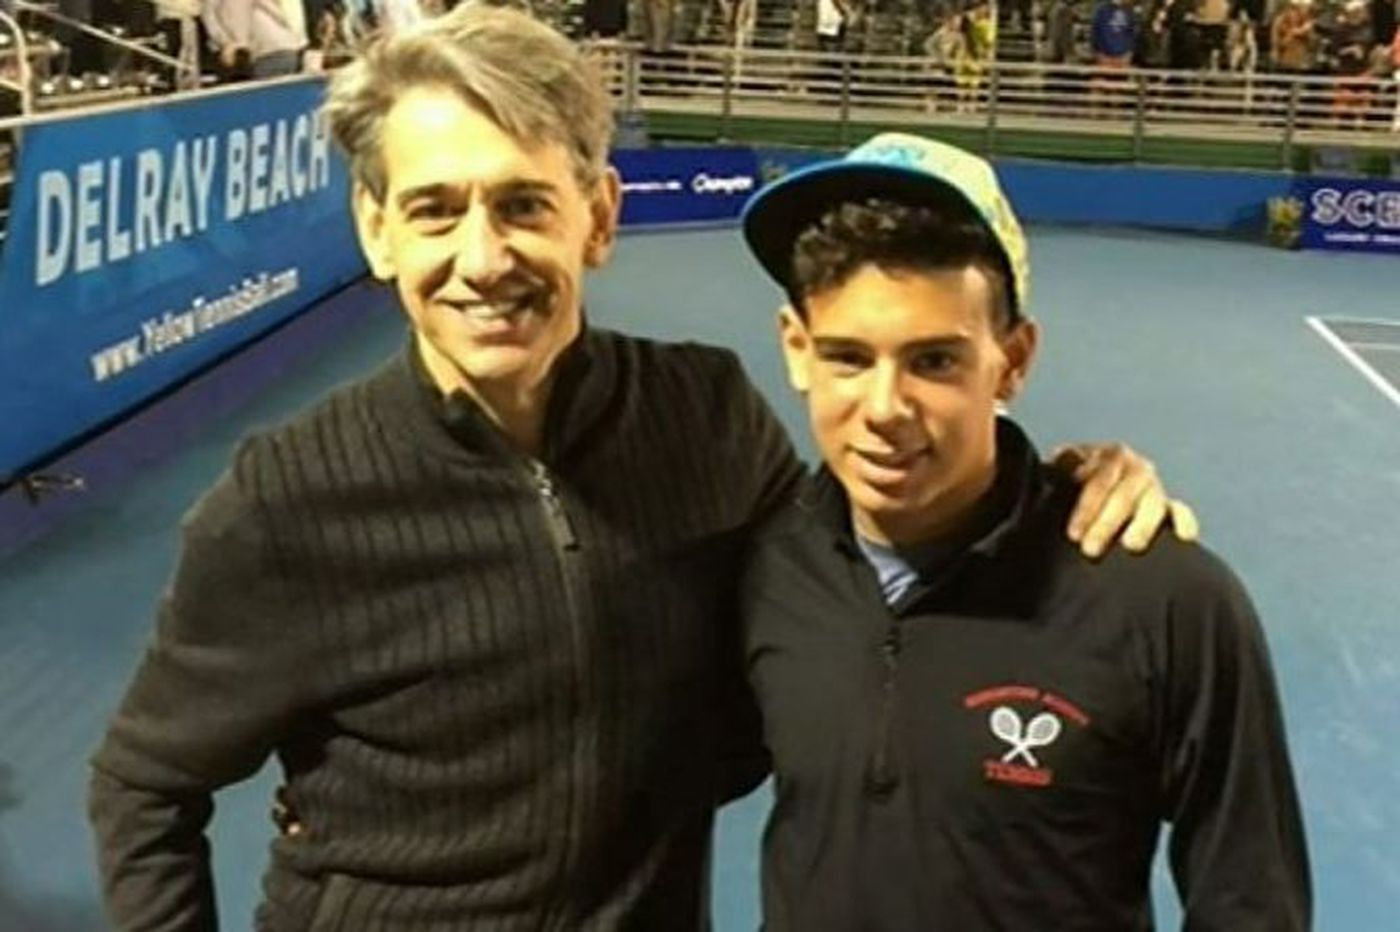 Jefferson doctor and teen son attacked while at Australian Open